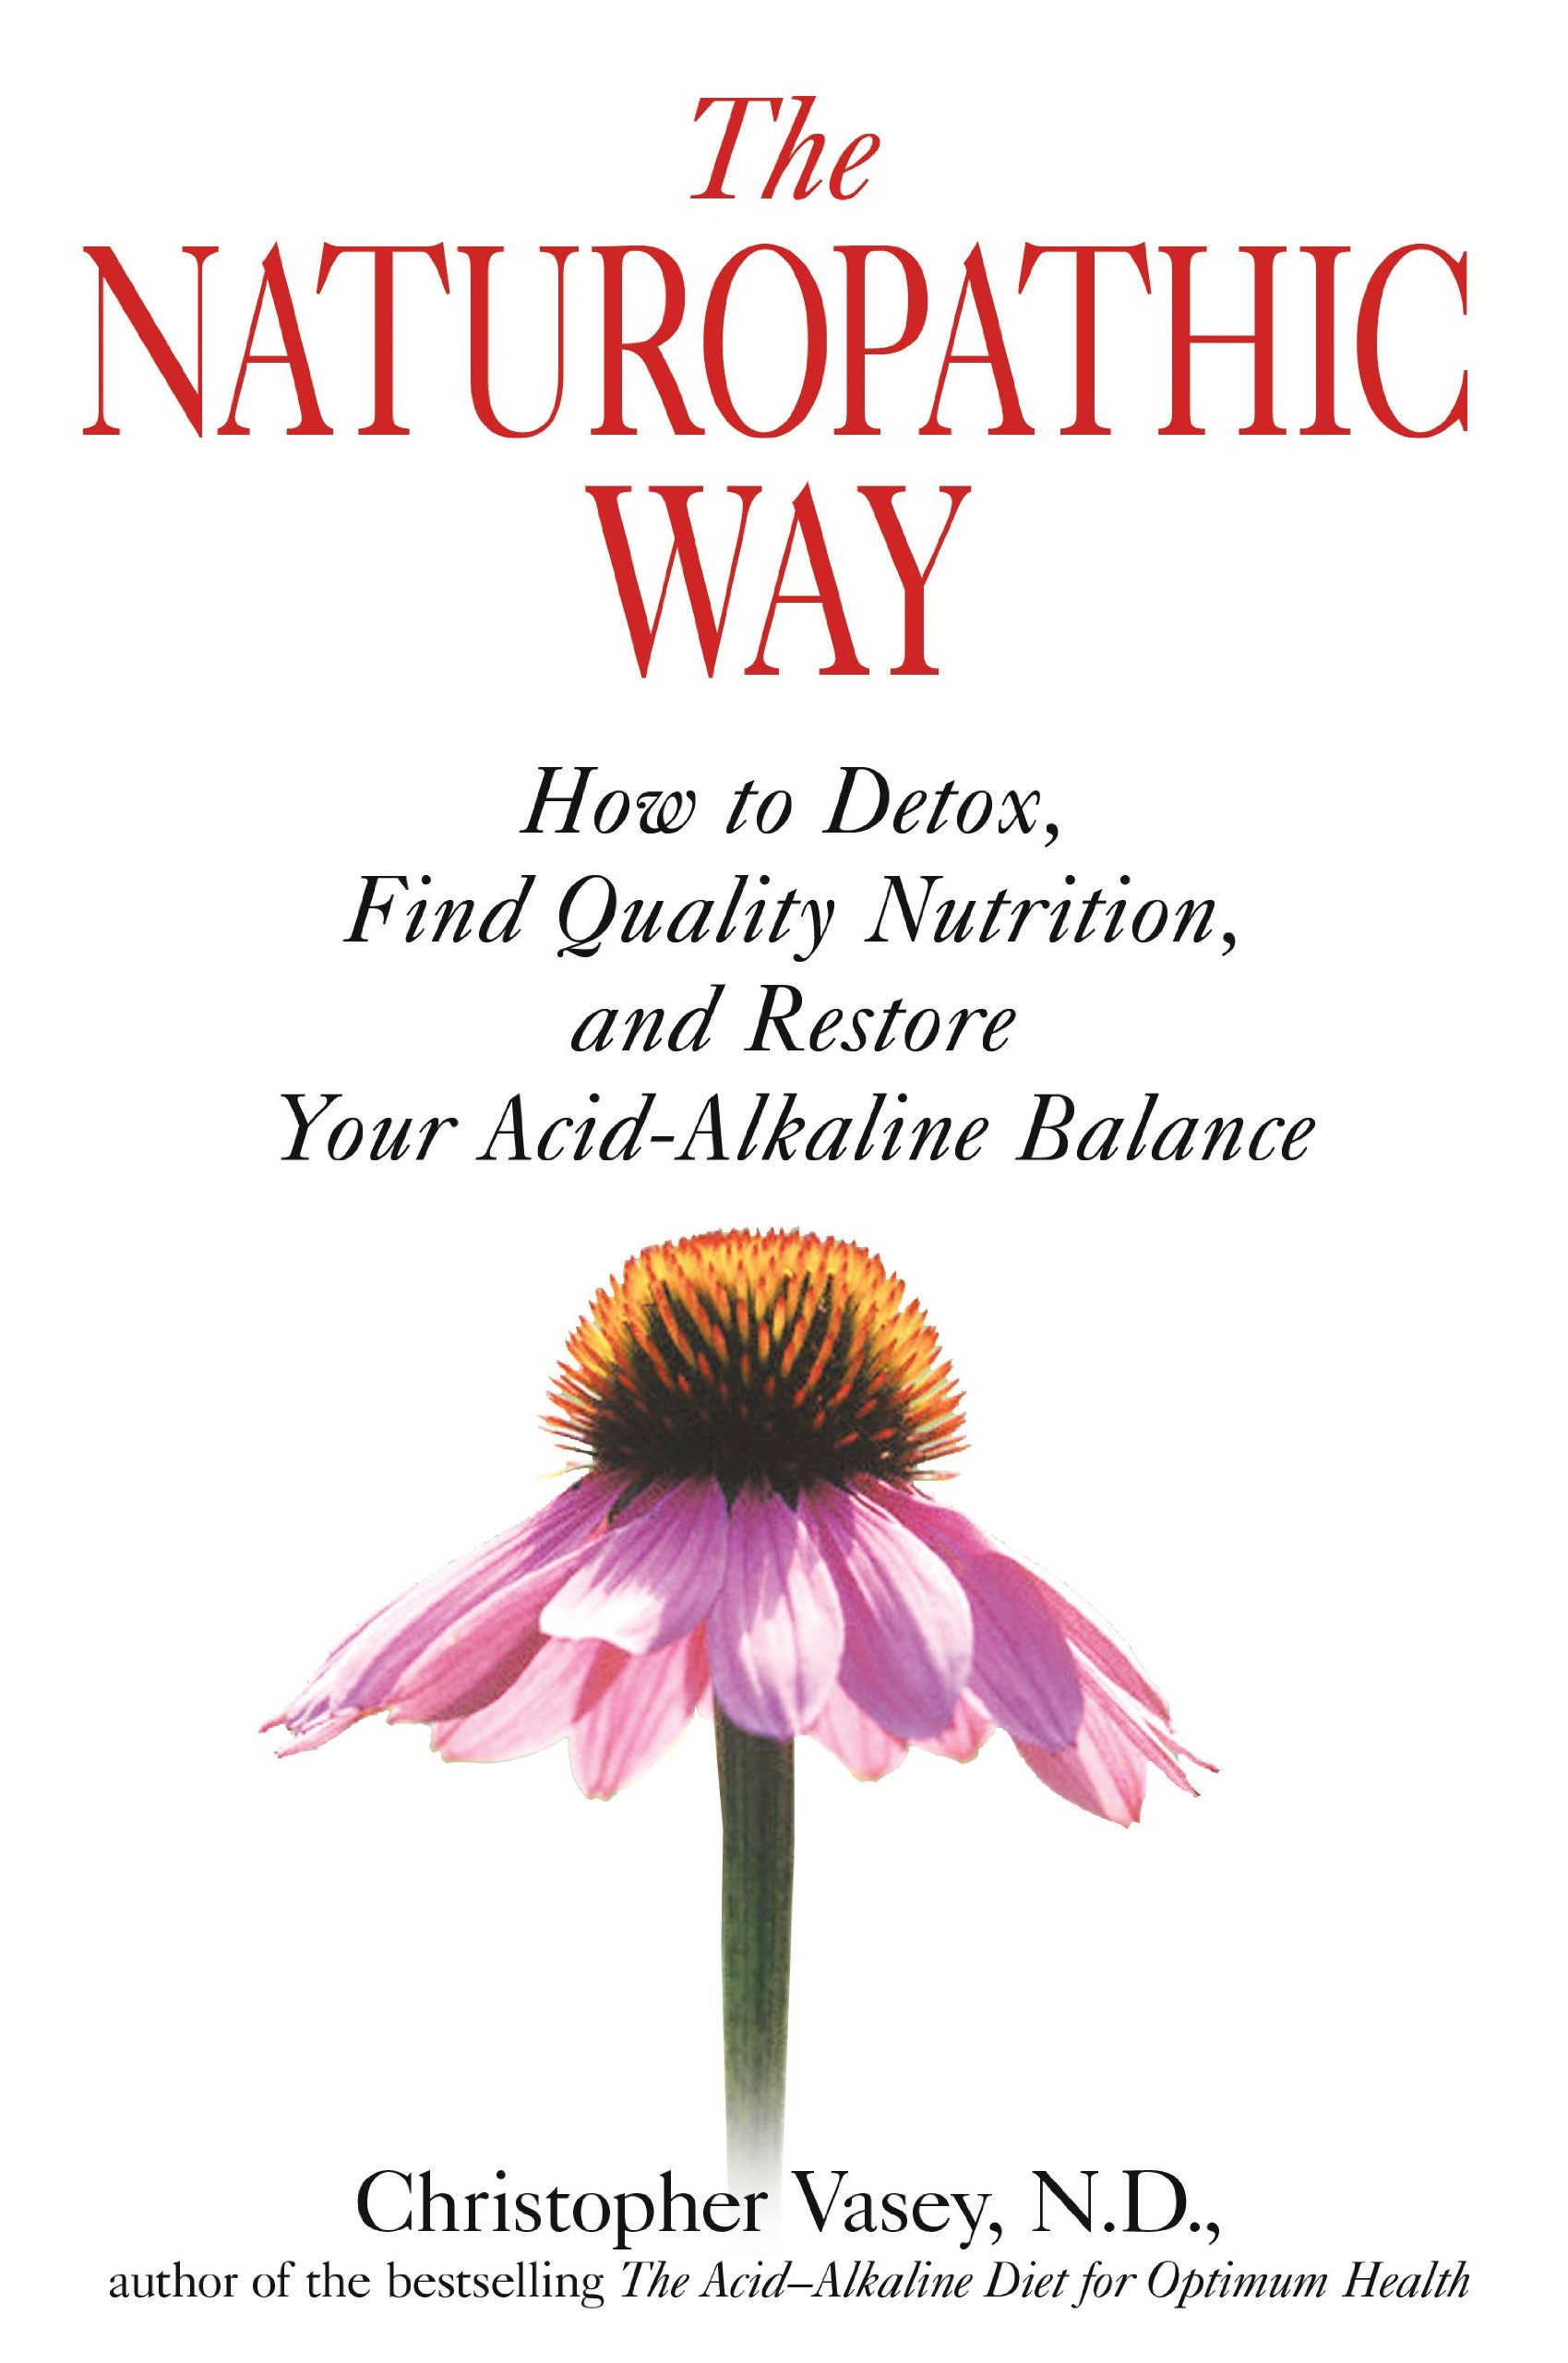 The Naturopathic Way: How to Detox, Find Quality Nutrition